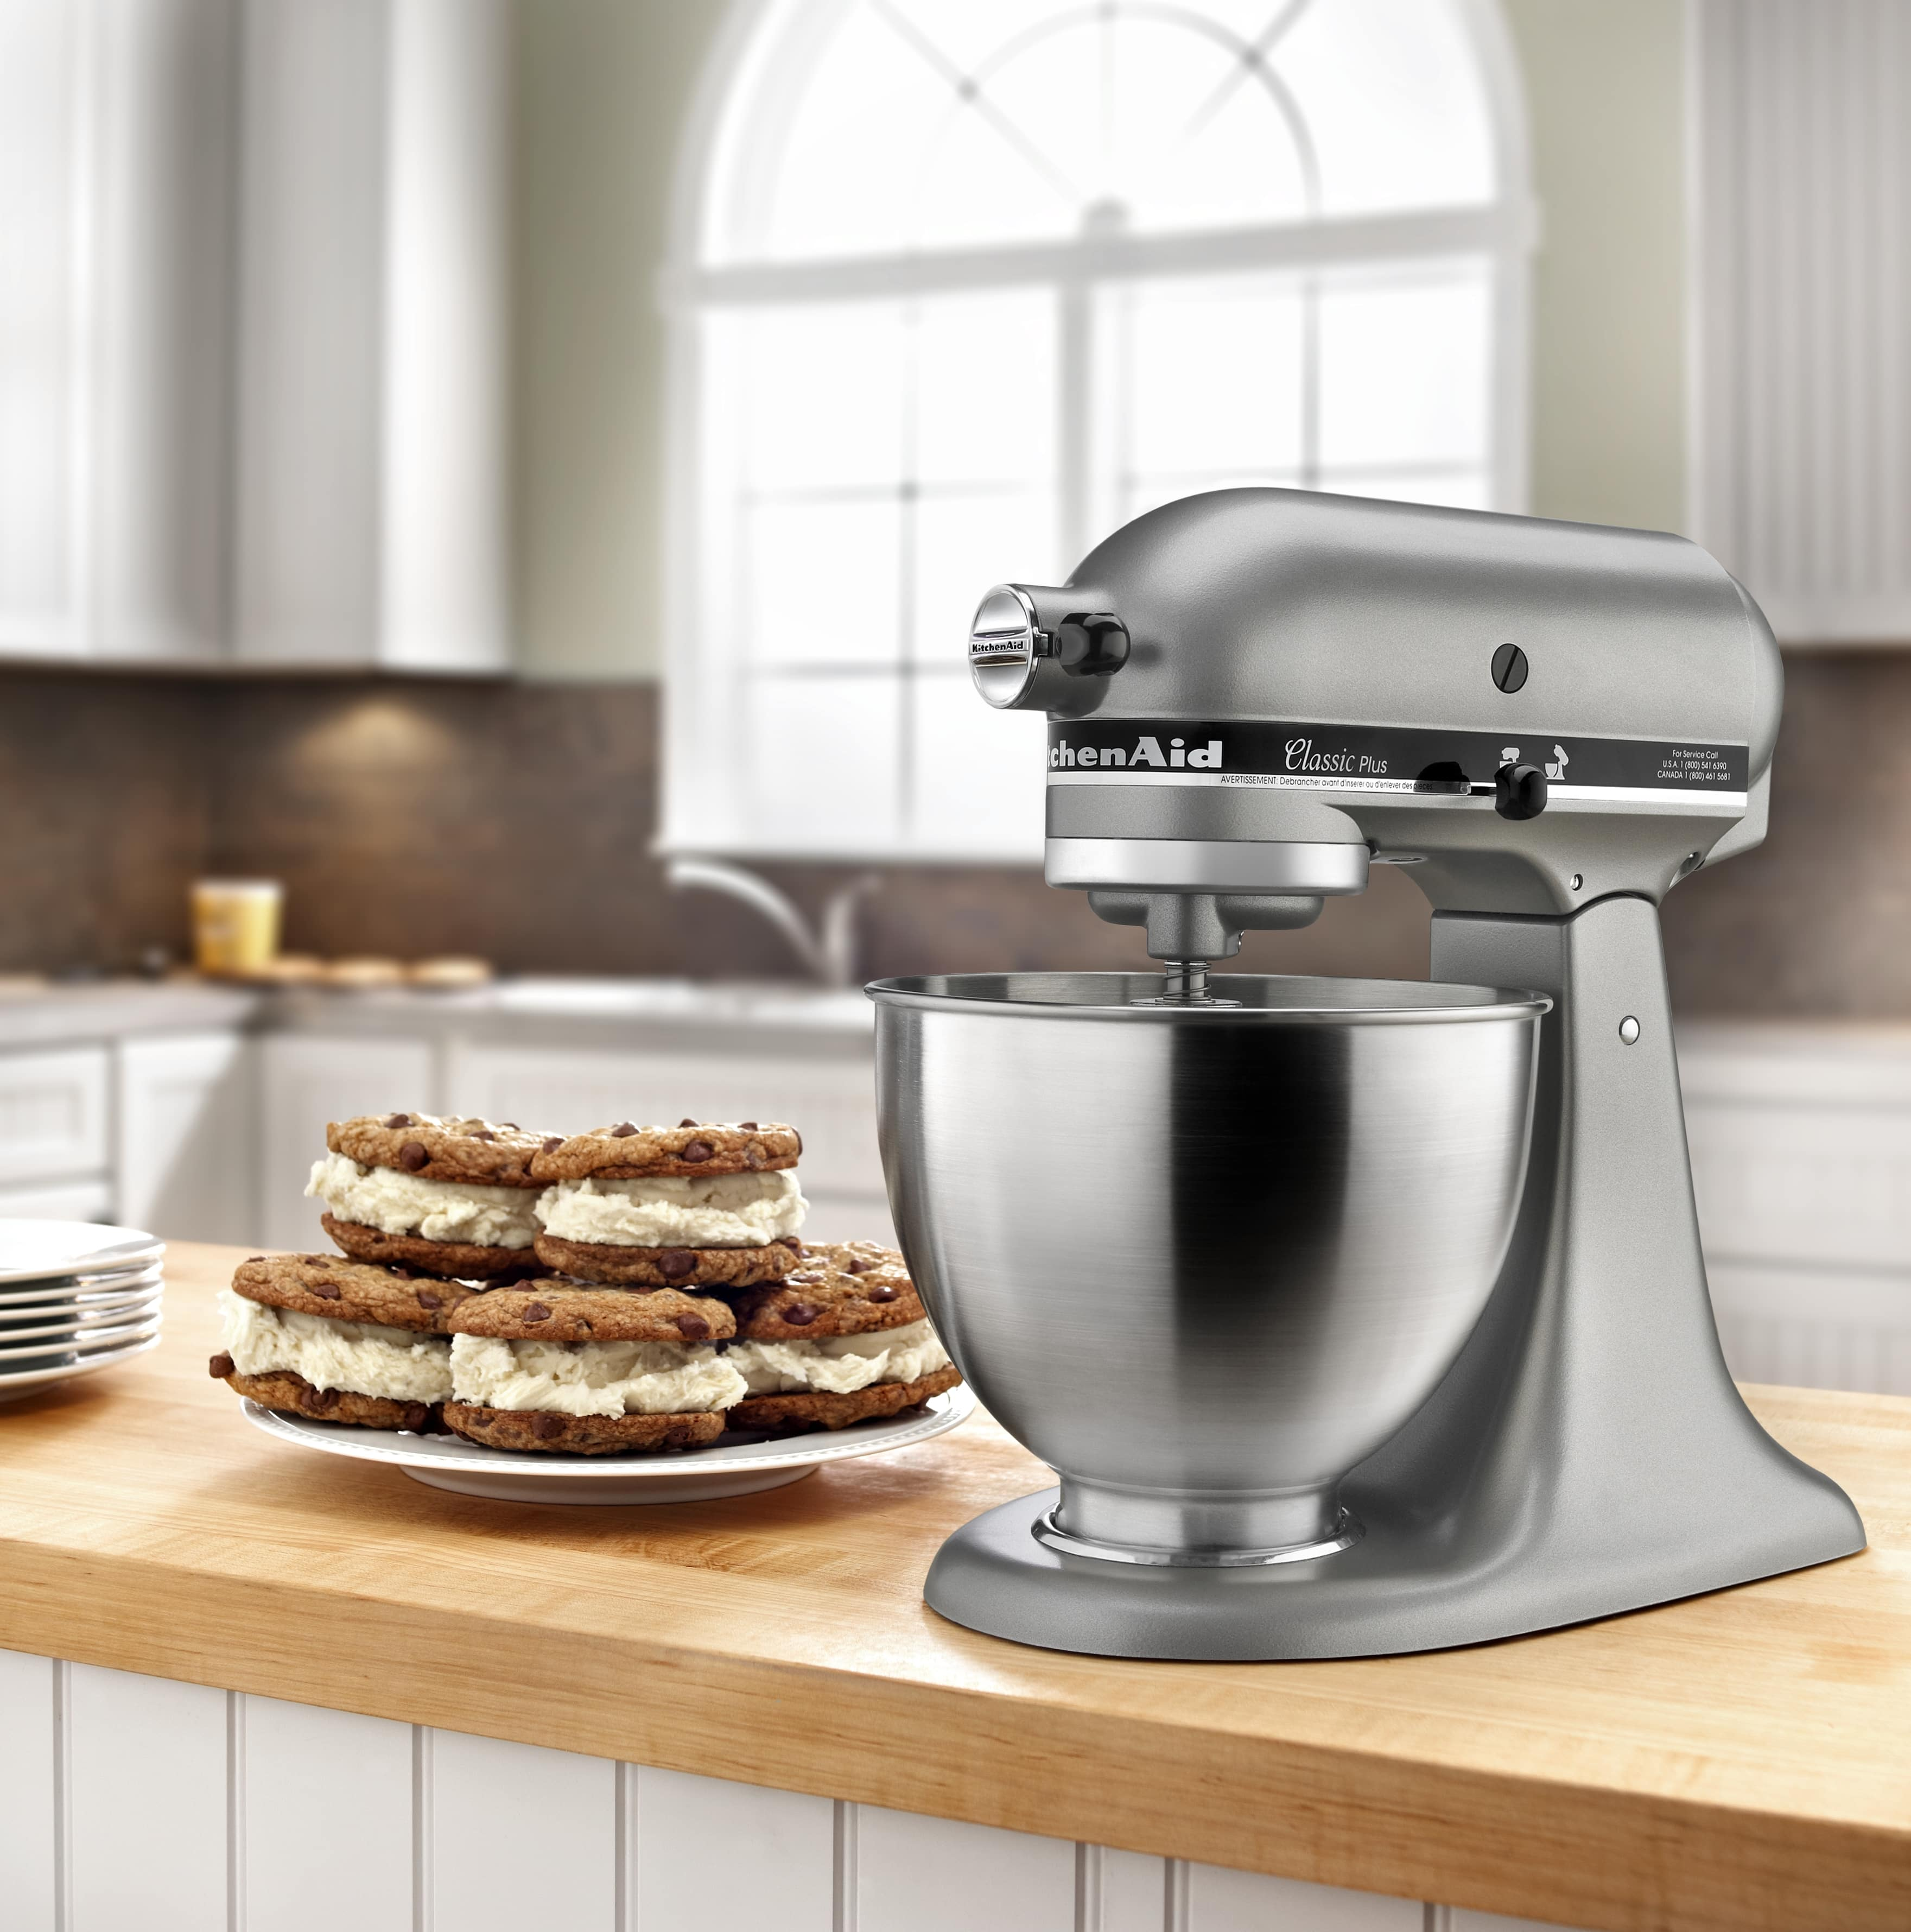 NEW-KitchenAid-Classic-Plus-Series-4-5-Quart-Tilt-Head-Stand-Mixer-KSM75 thumbnail 9